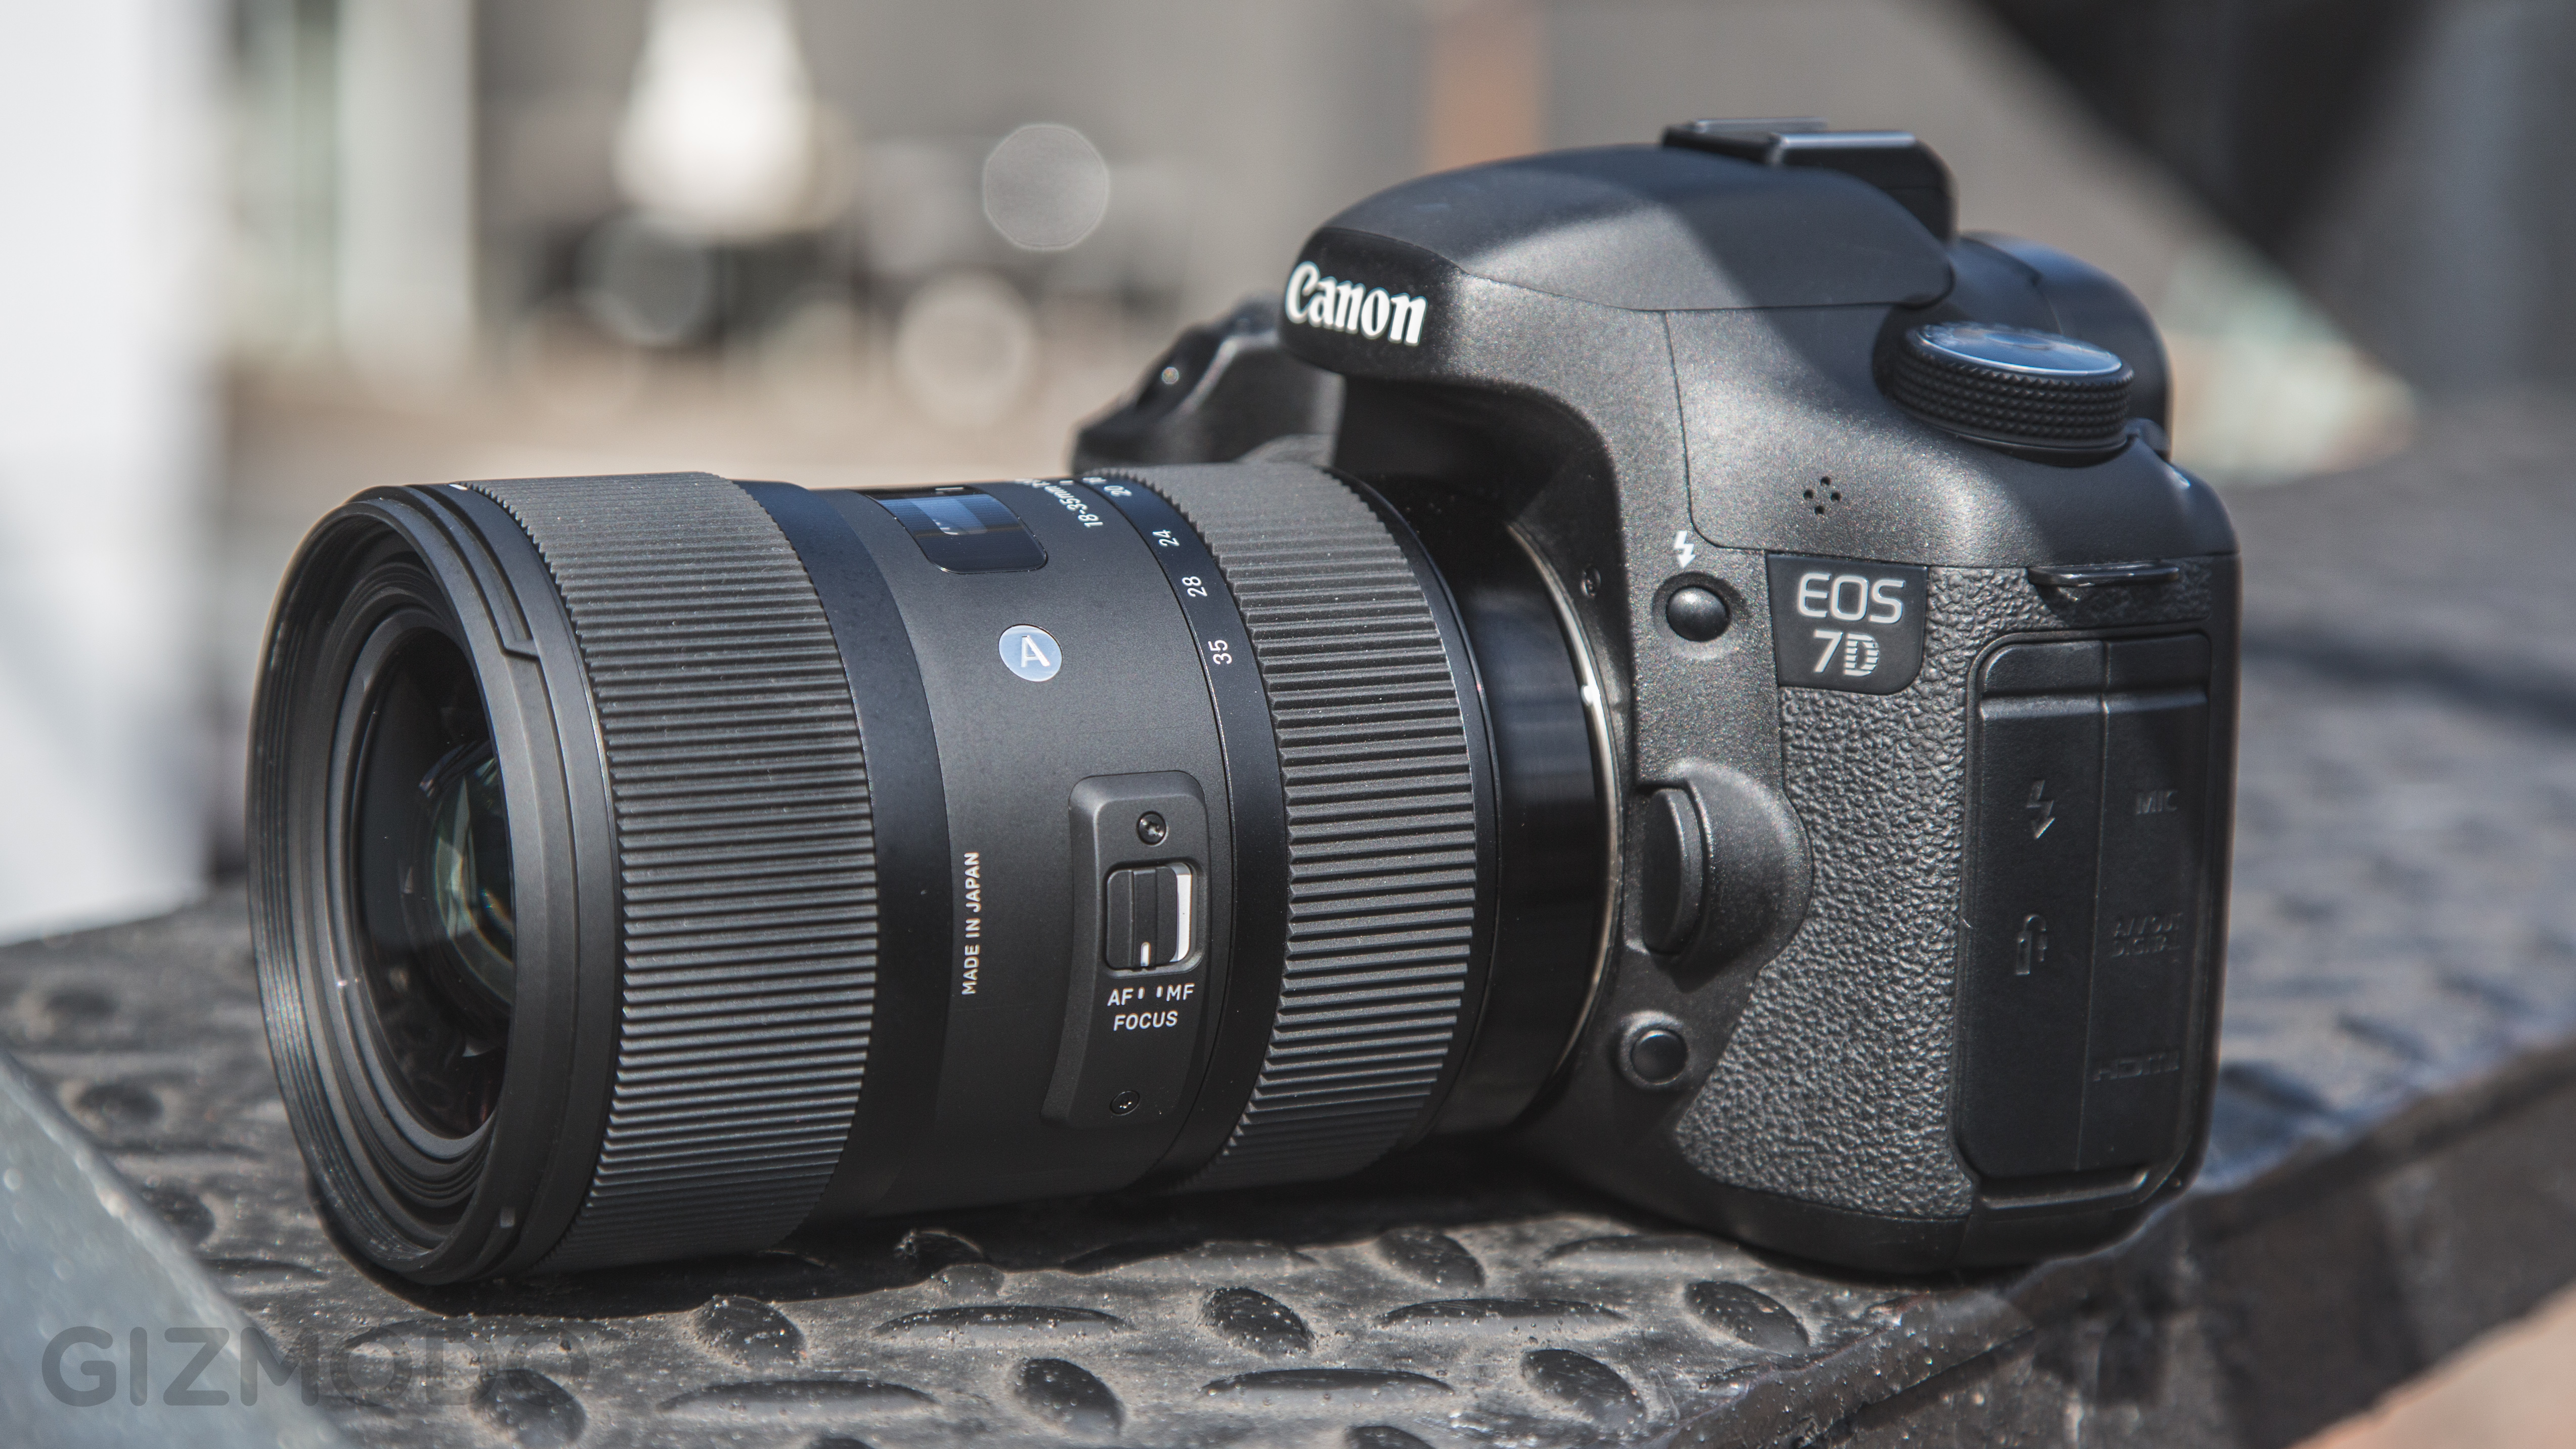 Sigma 18 35mm F 18 Review The Best Low Light Zoom Lens & Best Lens For Low Light - Democraciaejustica